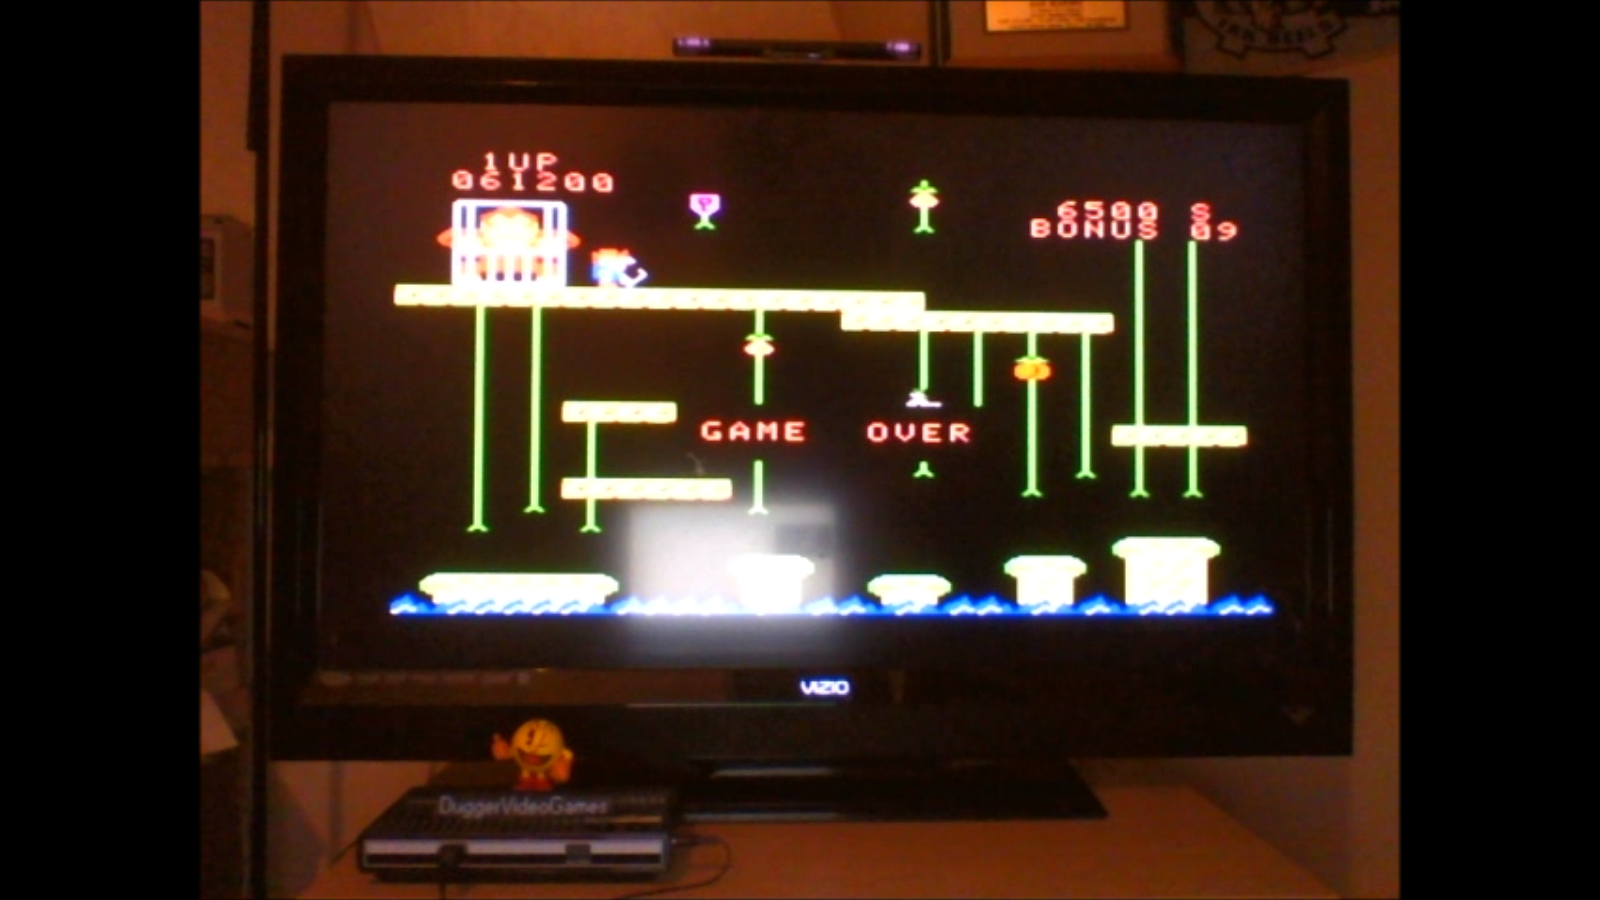 DuggerVideoGames: Donkey Kong Jr [Skill 3] (Colecovision Emulated) 61,200 points on 2016-09-15 01:02:41